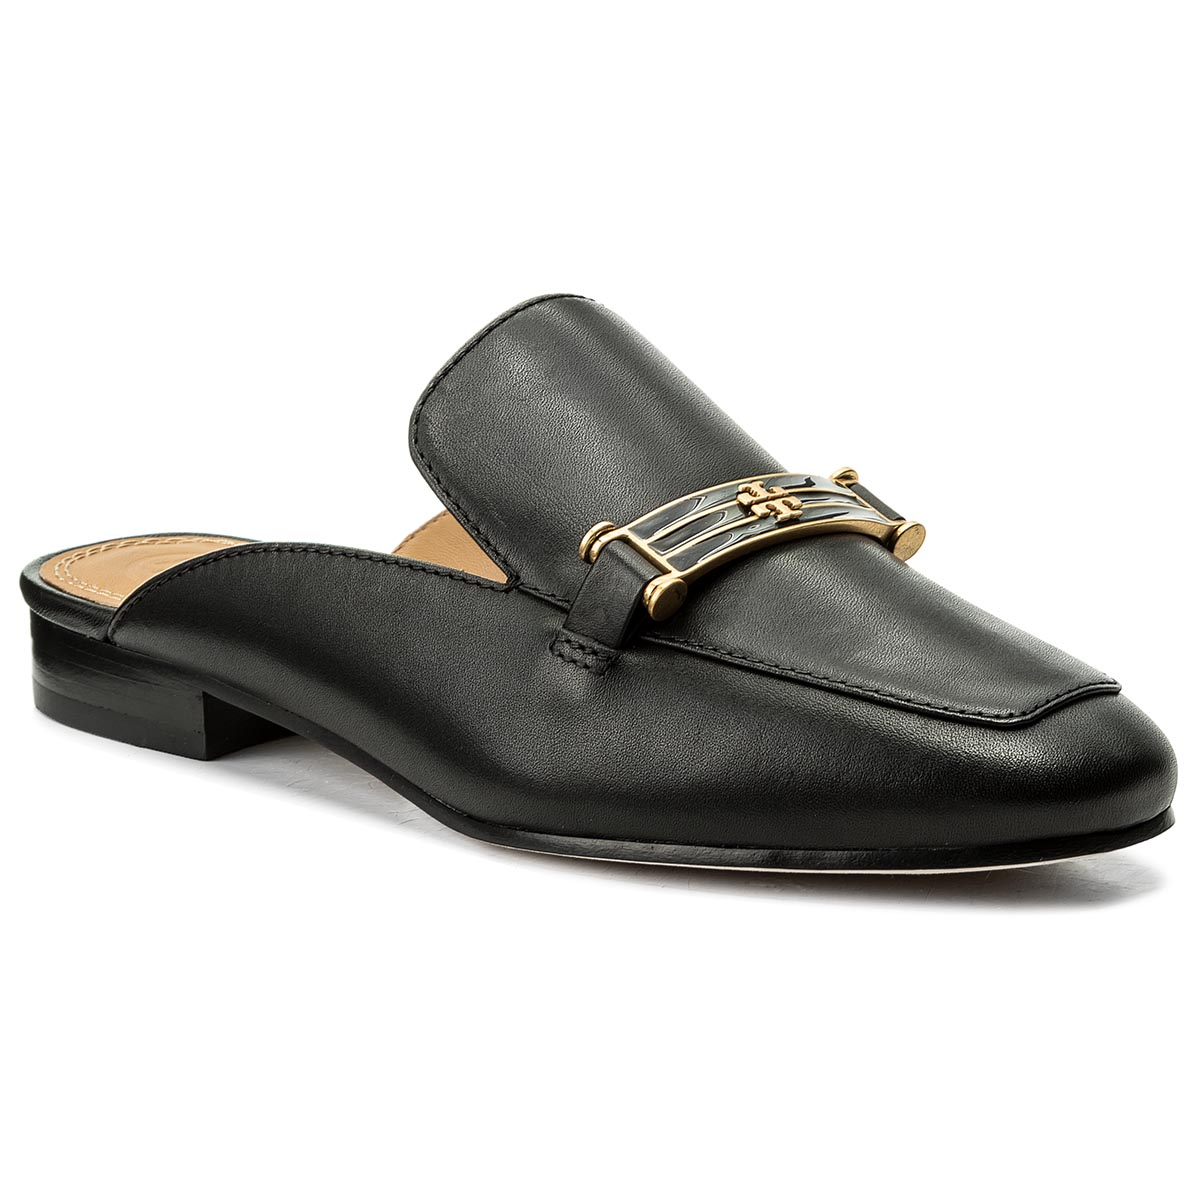 Klapki TORY BURCH - Amelia Backless Loafer 48282 Perfect Black 006